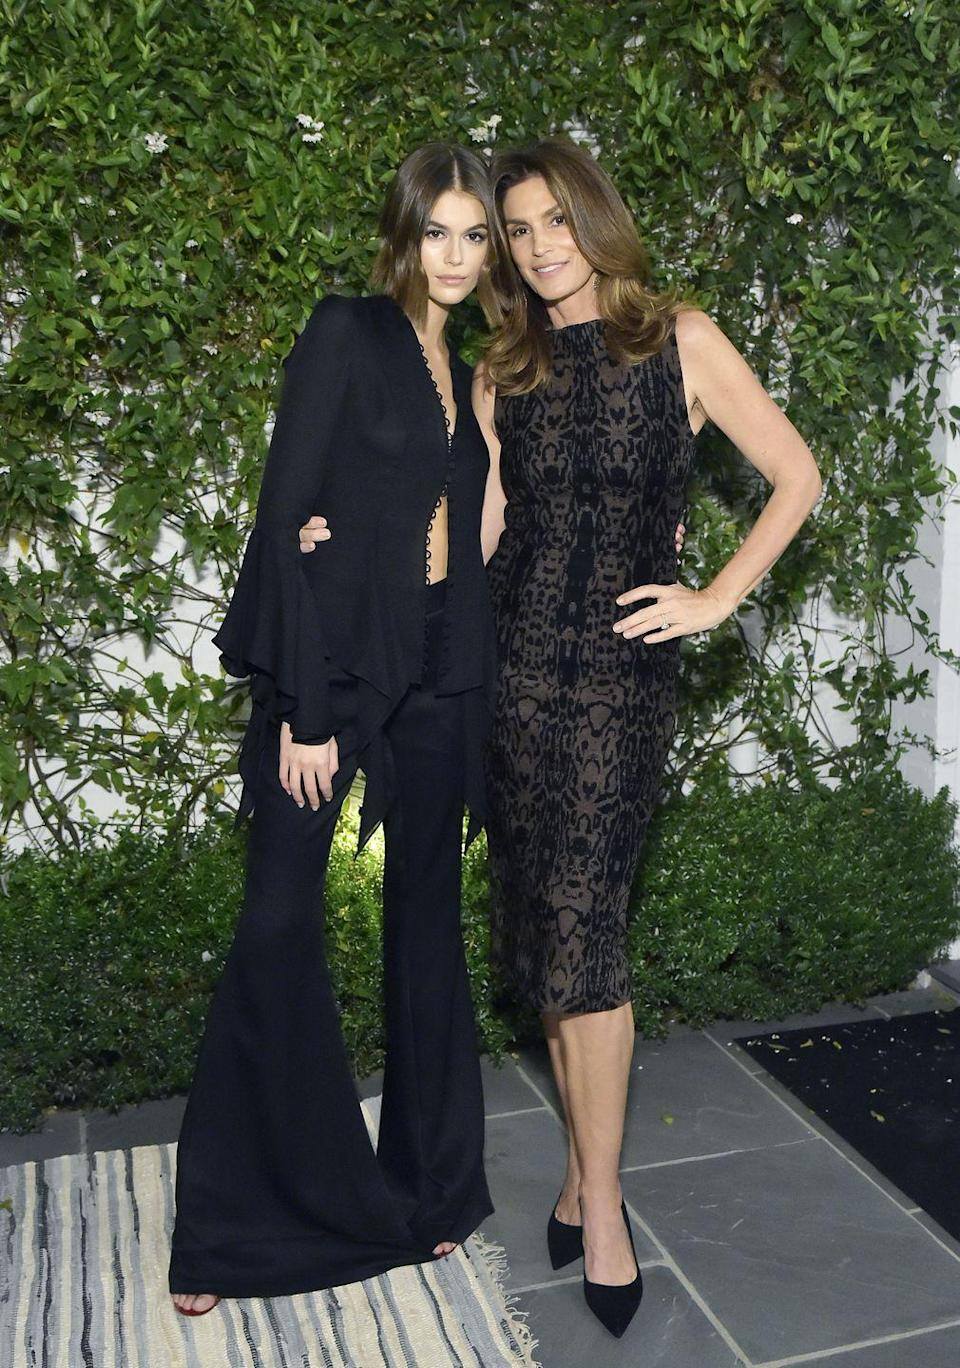 <p>The 18-year-old and 53-year-old supermodels coordinated in black ensembles for a gala in Beverly Hills on 1 November. The famous mother wore a black patterned over-the-knee midi dress which she teamed with a leather jacket and black pointed pumps. Meanwhile, Kaia sported a black scallop-trimmed blouse which she paired with with matching wide-legged pants and a white oversized blazer.</p>